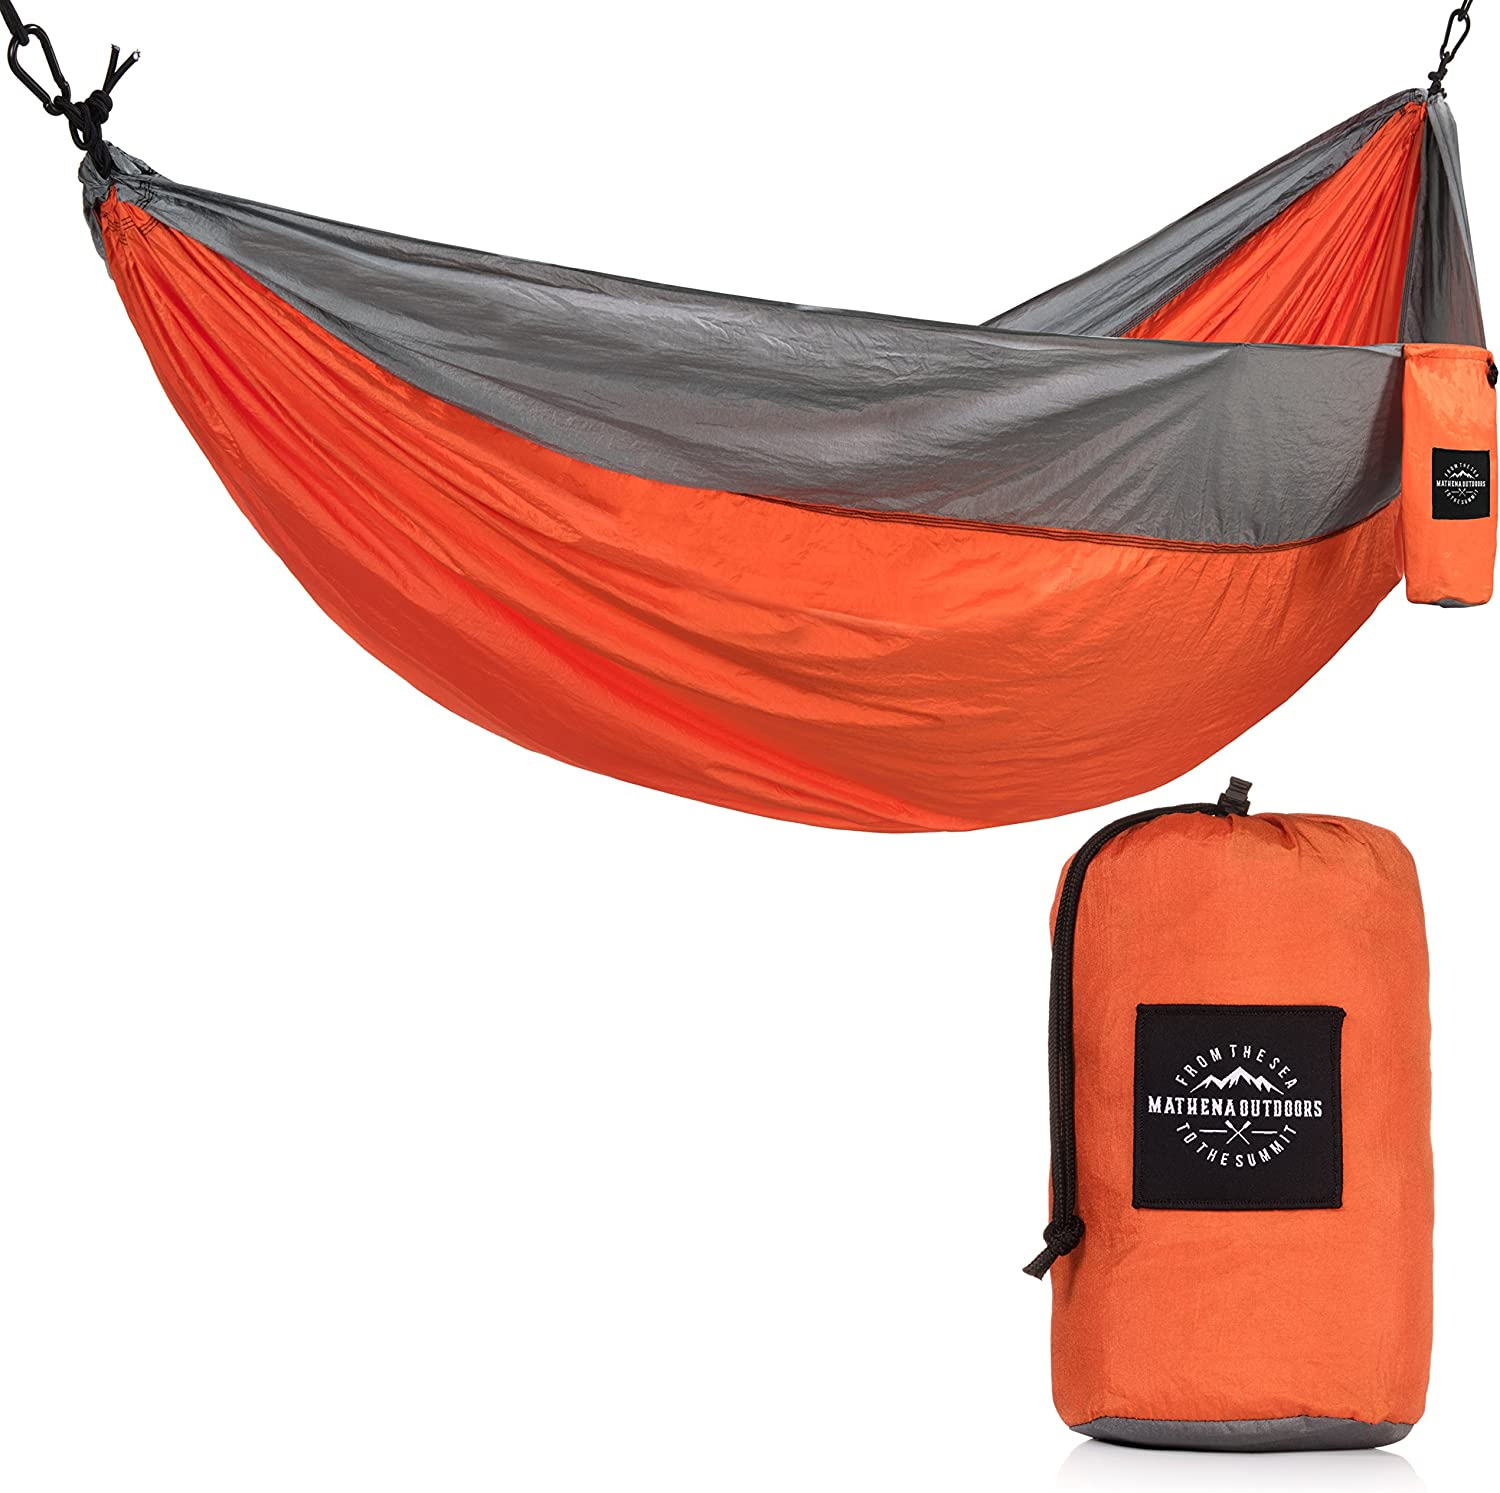 Mathena Outdoors Ultra-Strong Double Size Portable Hammock 210T Parachute Nylon Outdoor Hammock for Camping Hiking Beach Backyard Travel Festivals Fishing Sleeping Backpacking More